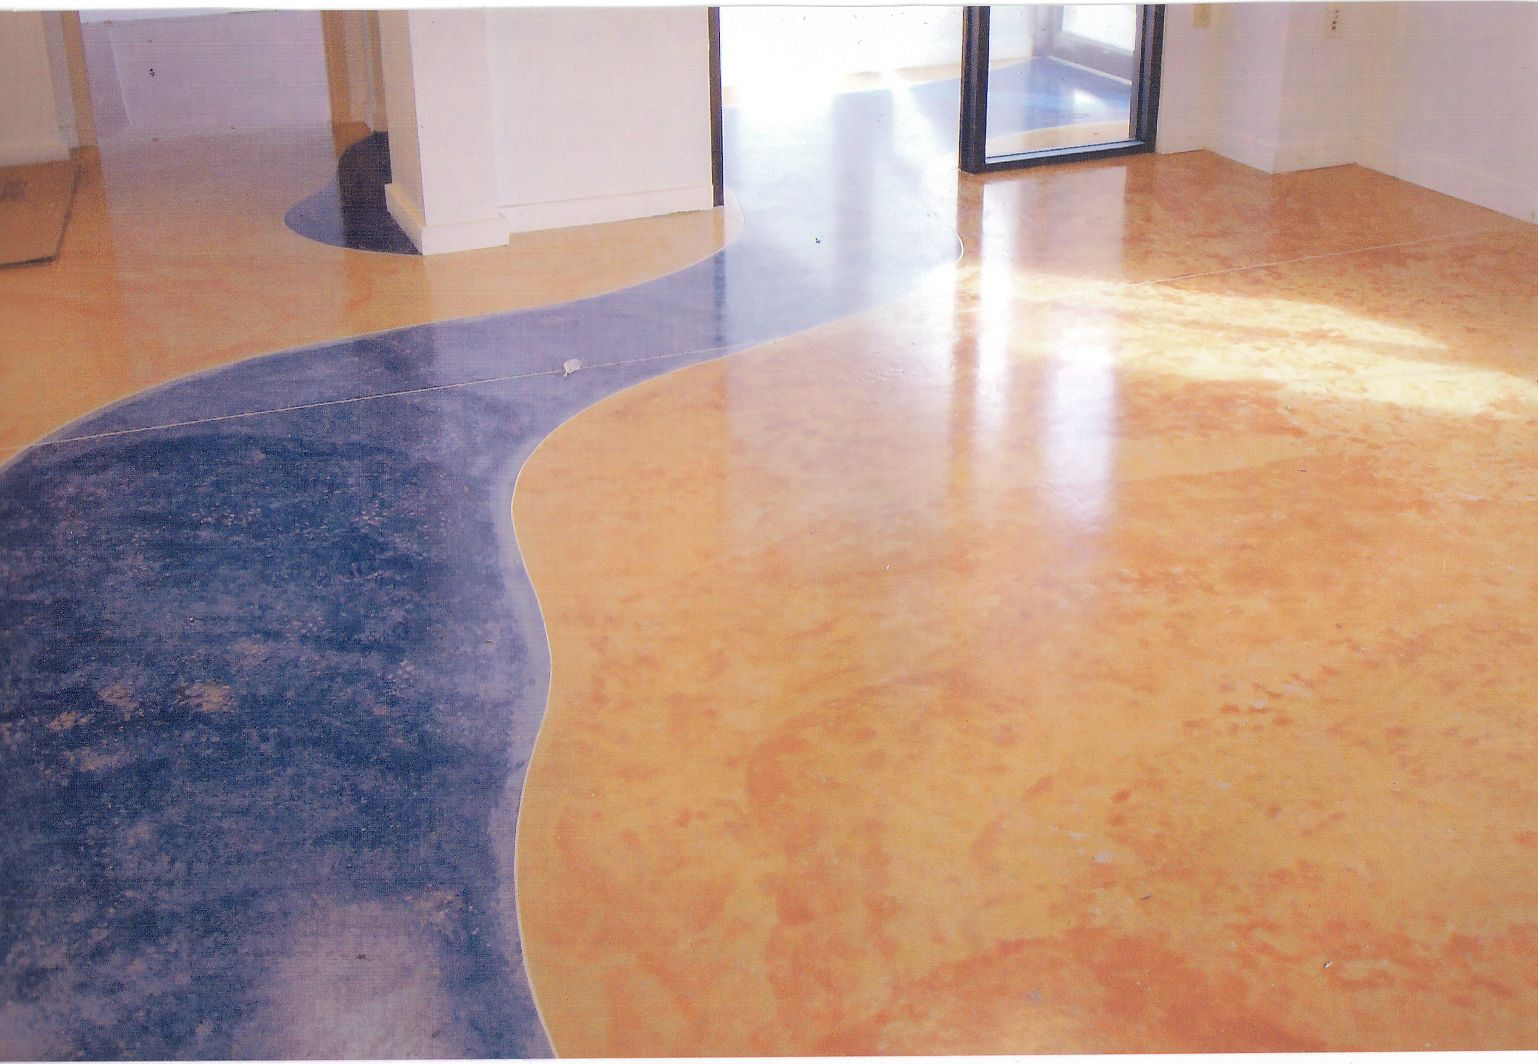 Staining concrete floor patterns diy pinterest for How to care for stained concrete floors